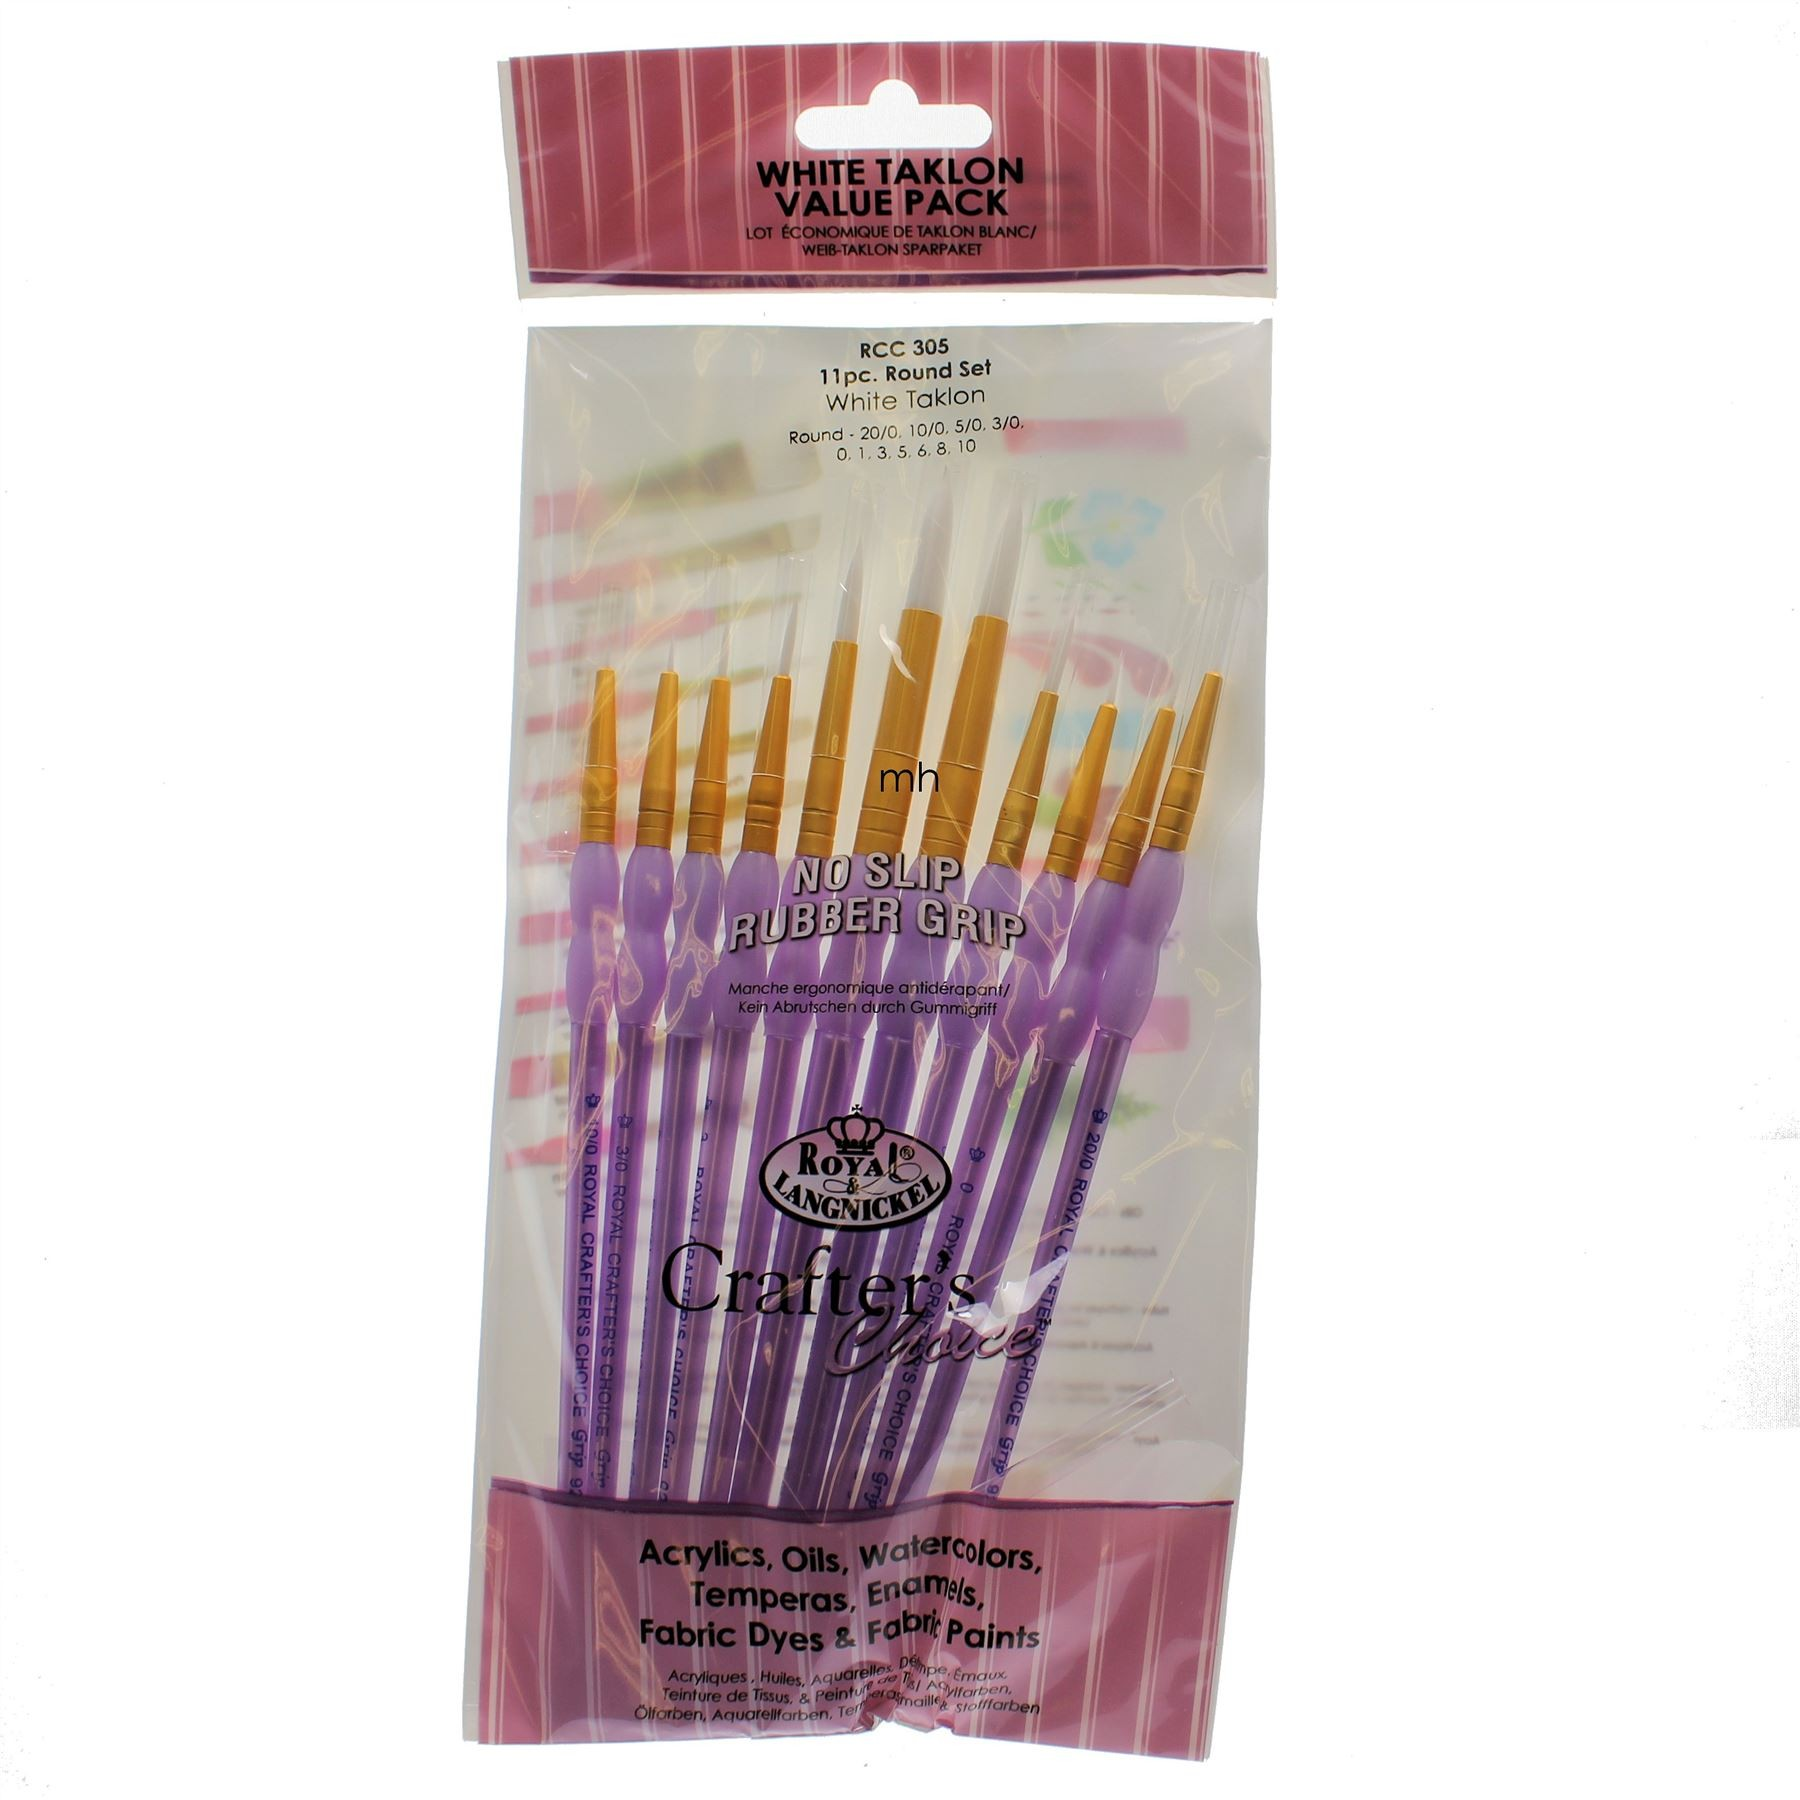 Royal & Langnickel Crafters choice Artists Golden Taklon Paint Brush set RCC-300#